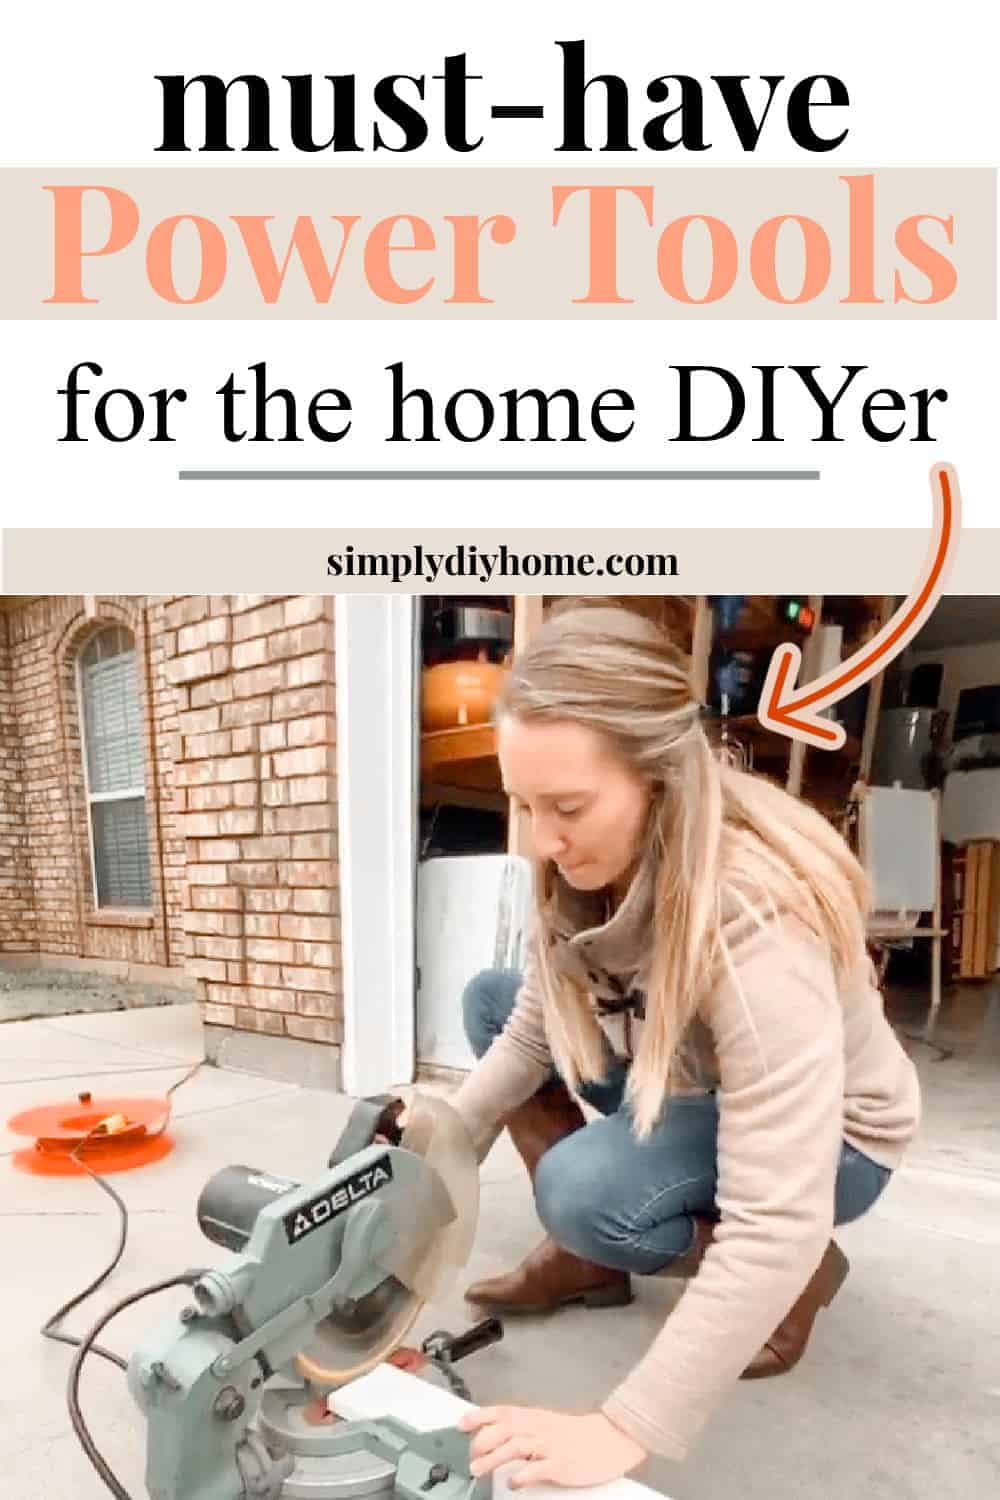 Must-Have Power Tools for Home DIY